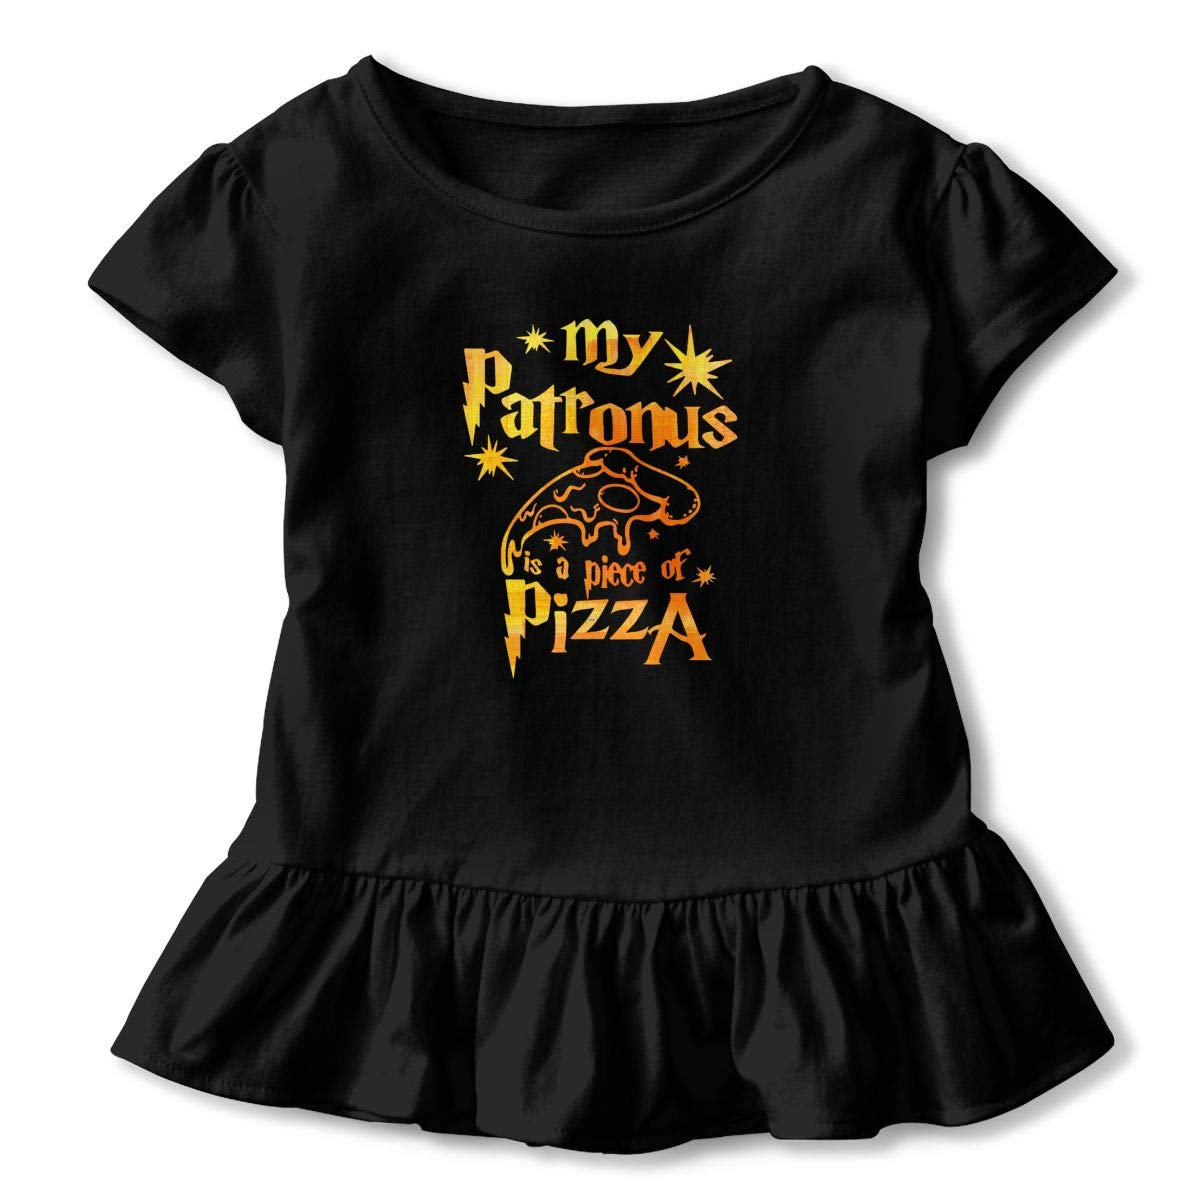 CZnuen Or Maybe Your Patronus is Pizza Baby Girls Round Neck Short Sleeve Ruffle T-Shirt Top